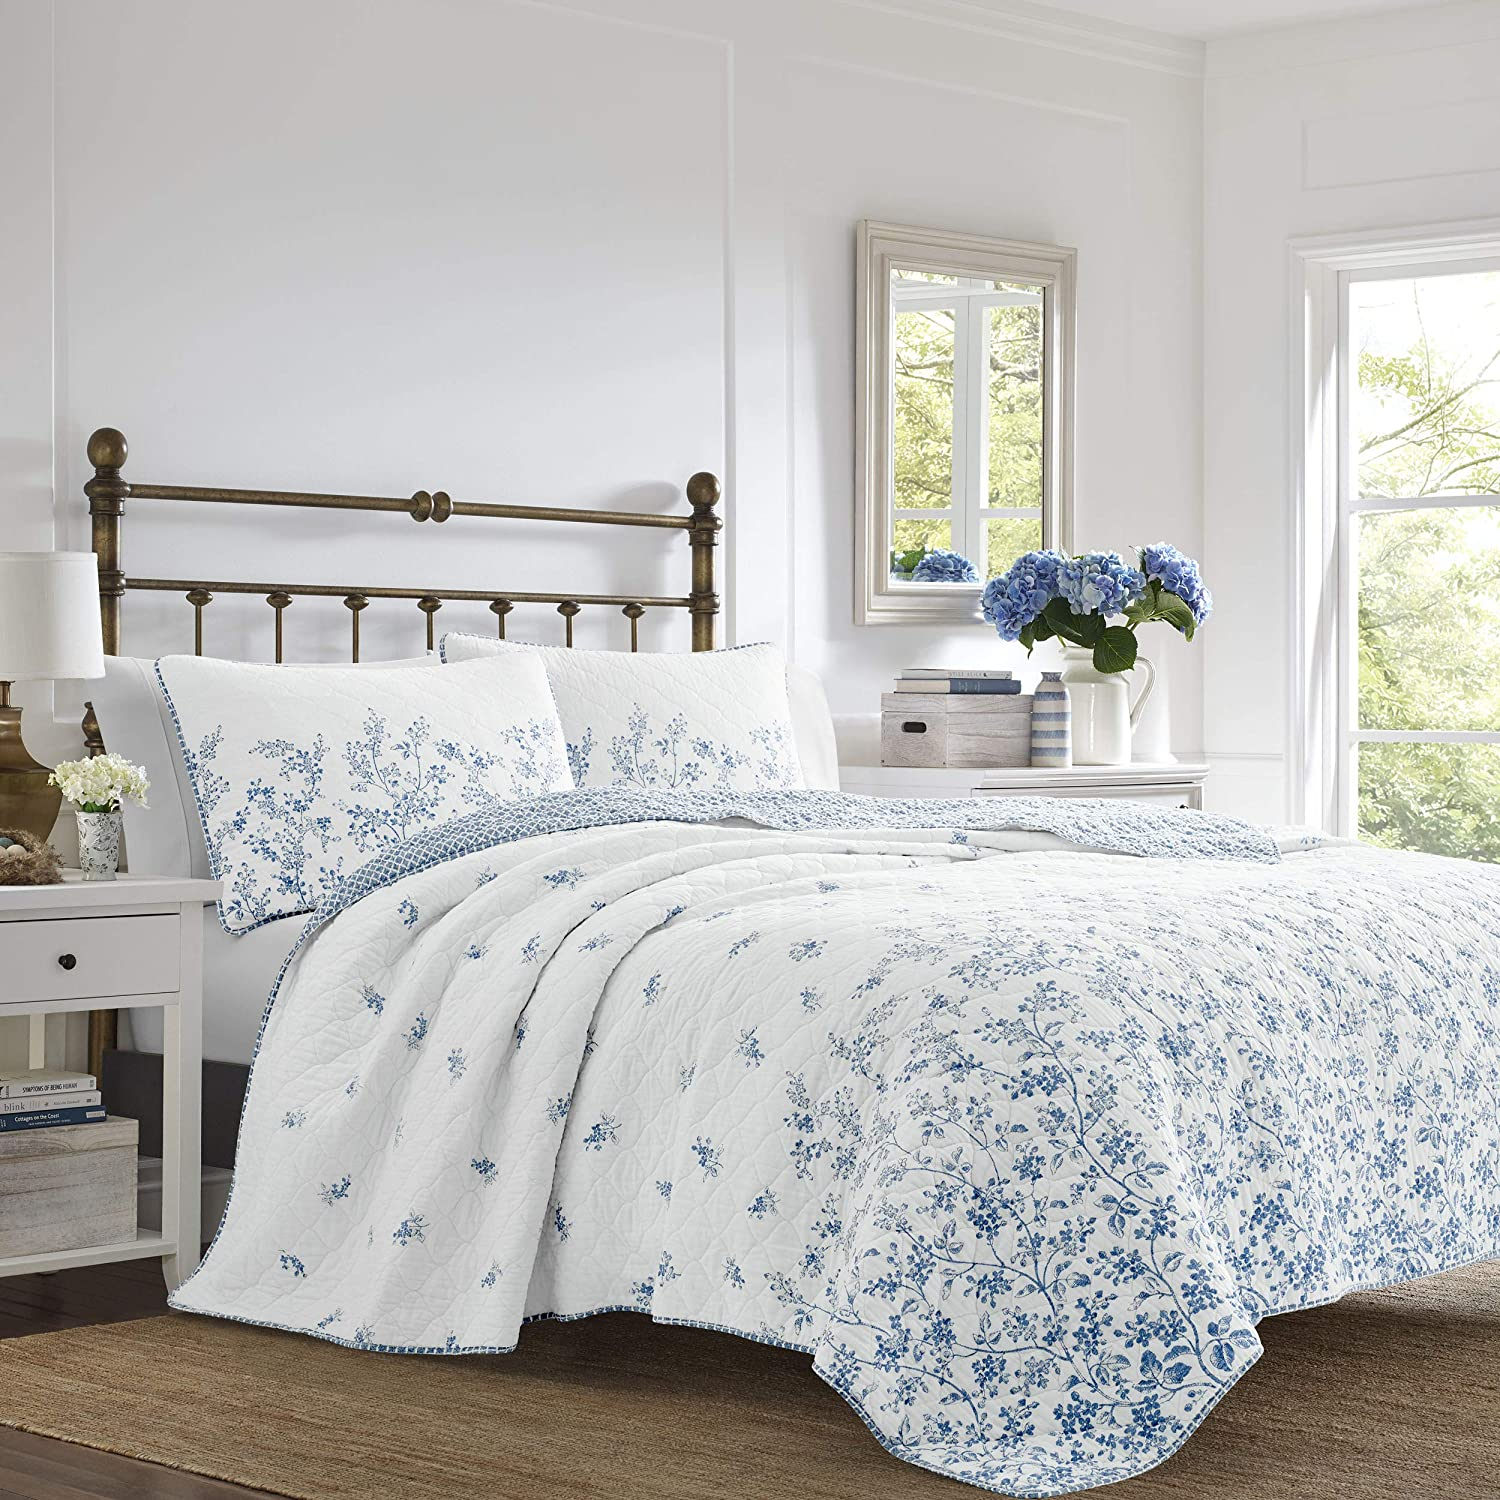 Laura High quality new Ashley - Flora Collection 100% Set Factory outlet Cotton Rever Quilt